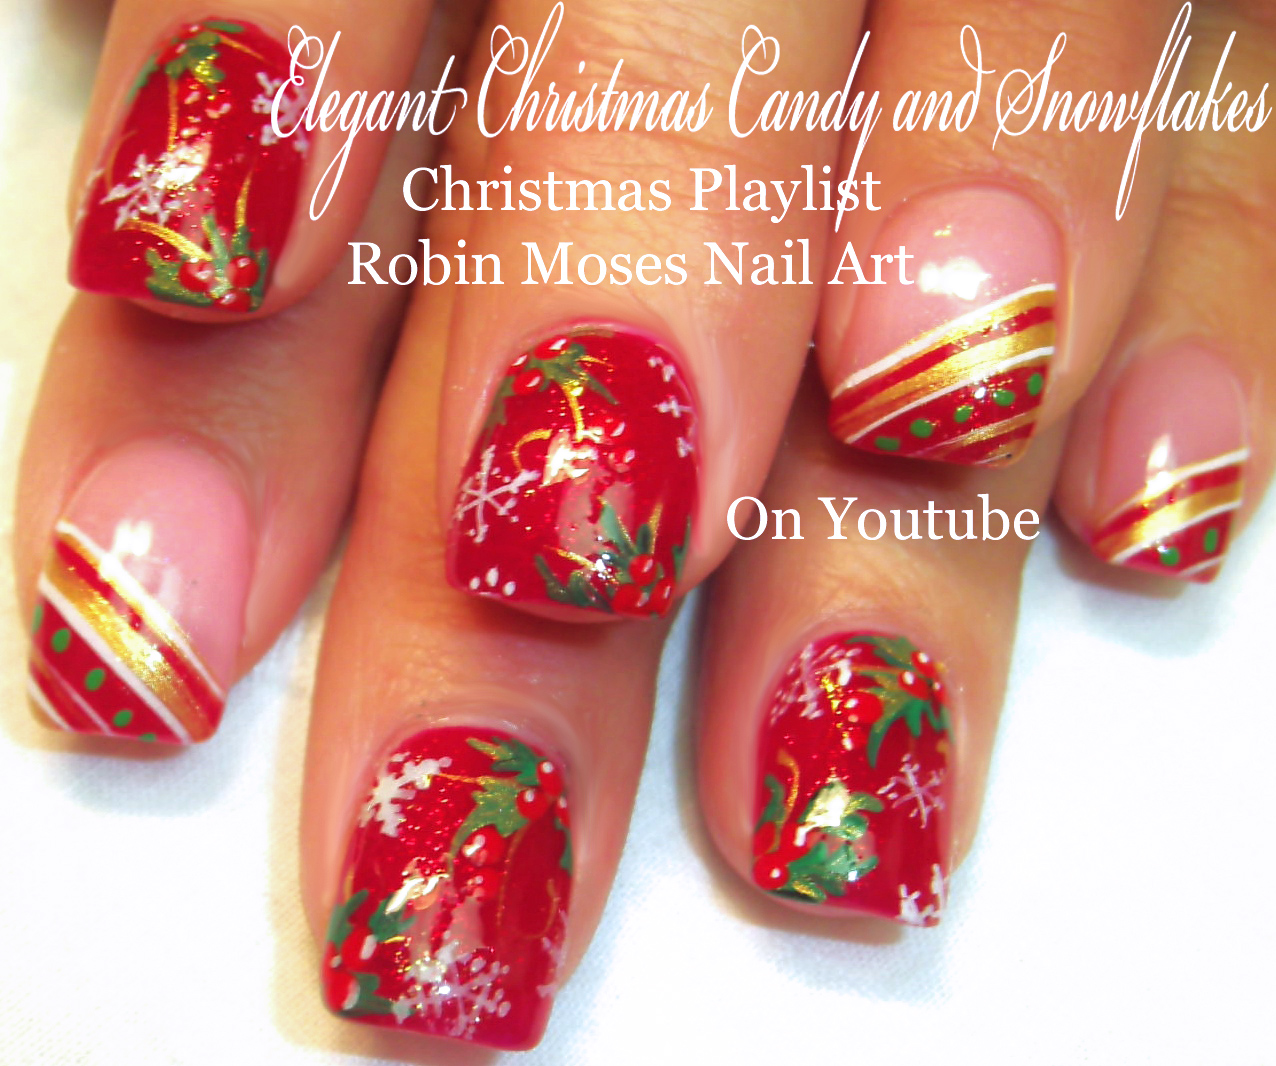 Robin moses nail art november 2017 ps please keep our community friendly and full of joy by always sharing who inspires you here is how tag me inspiredbyrobinmoses everywhere you show prinsesfo Images